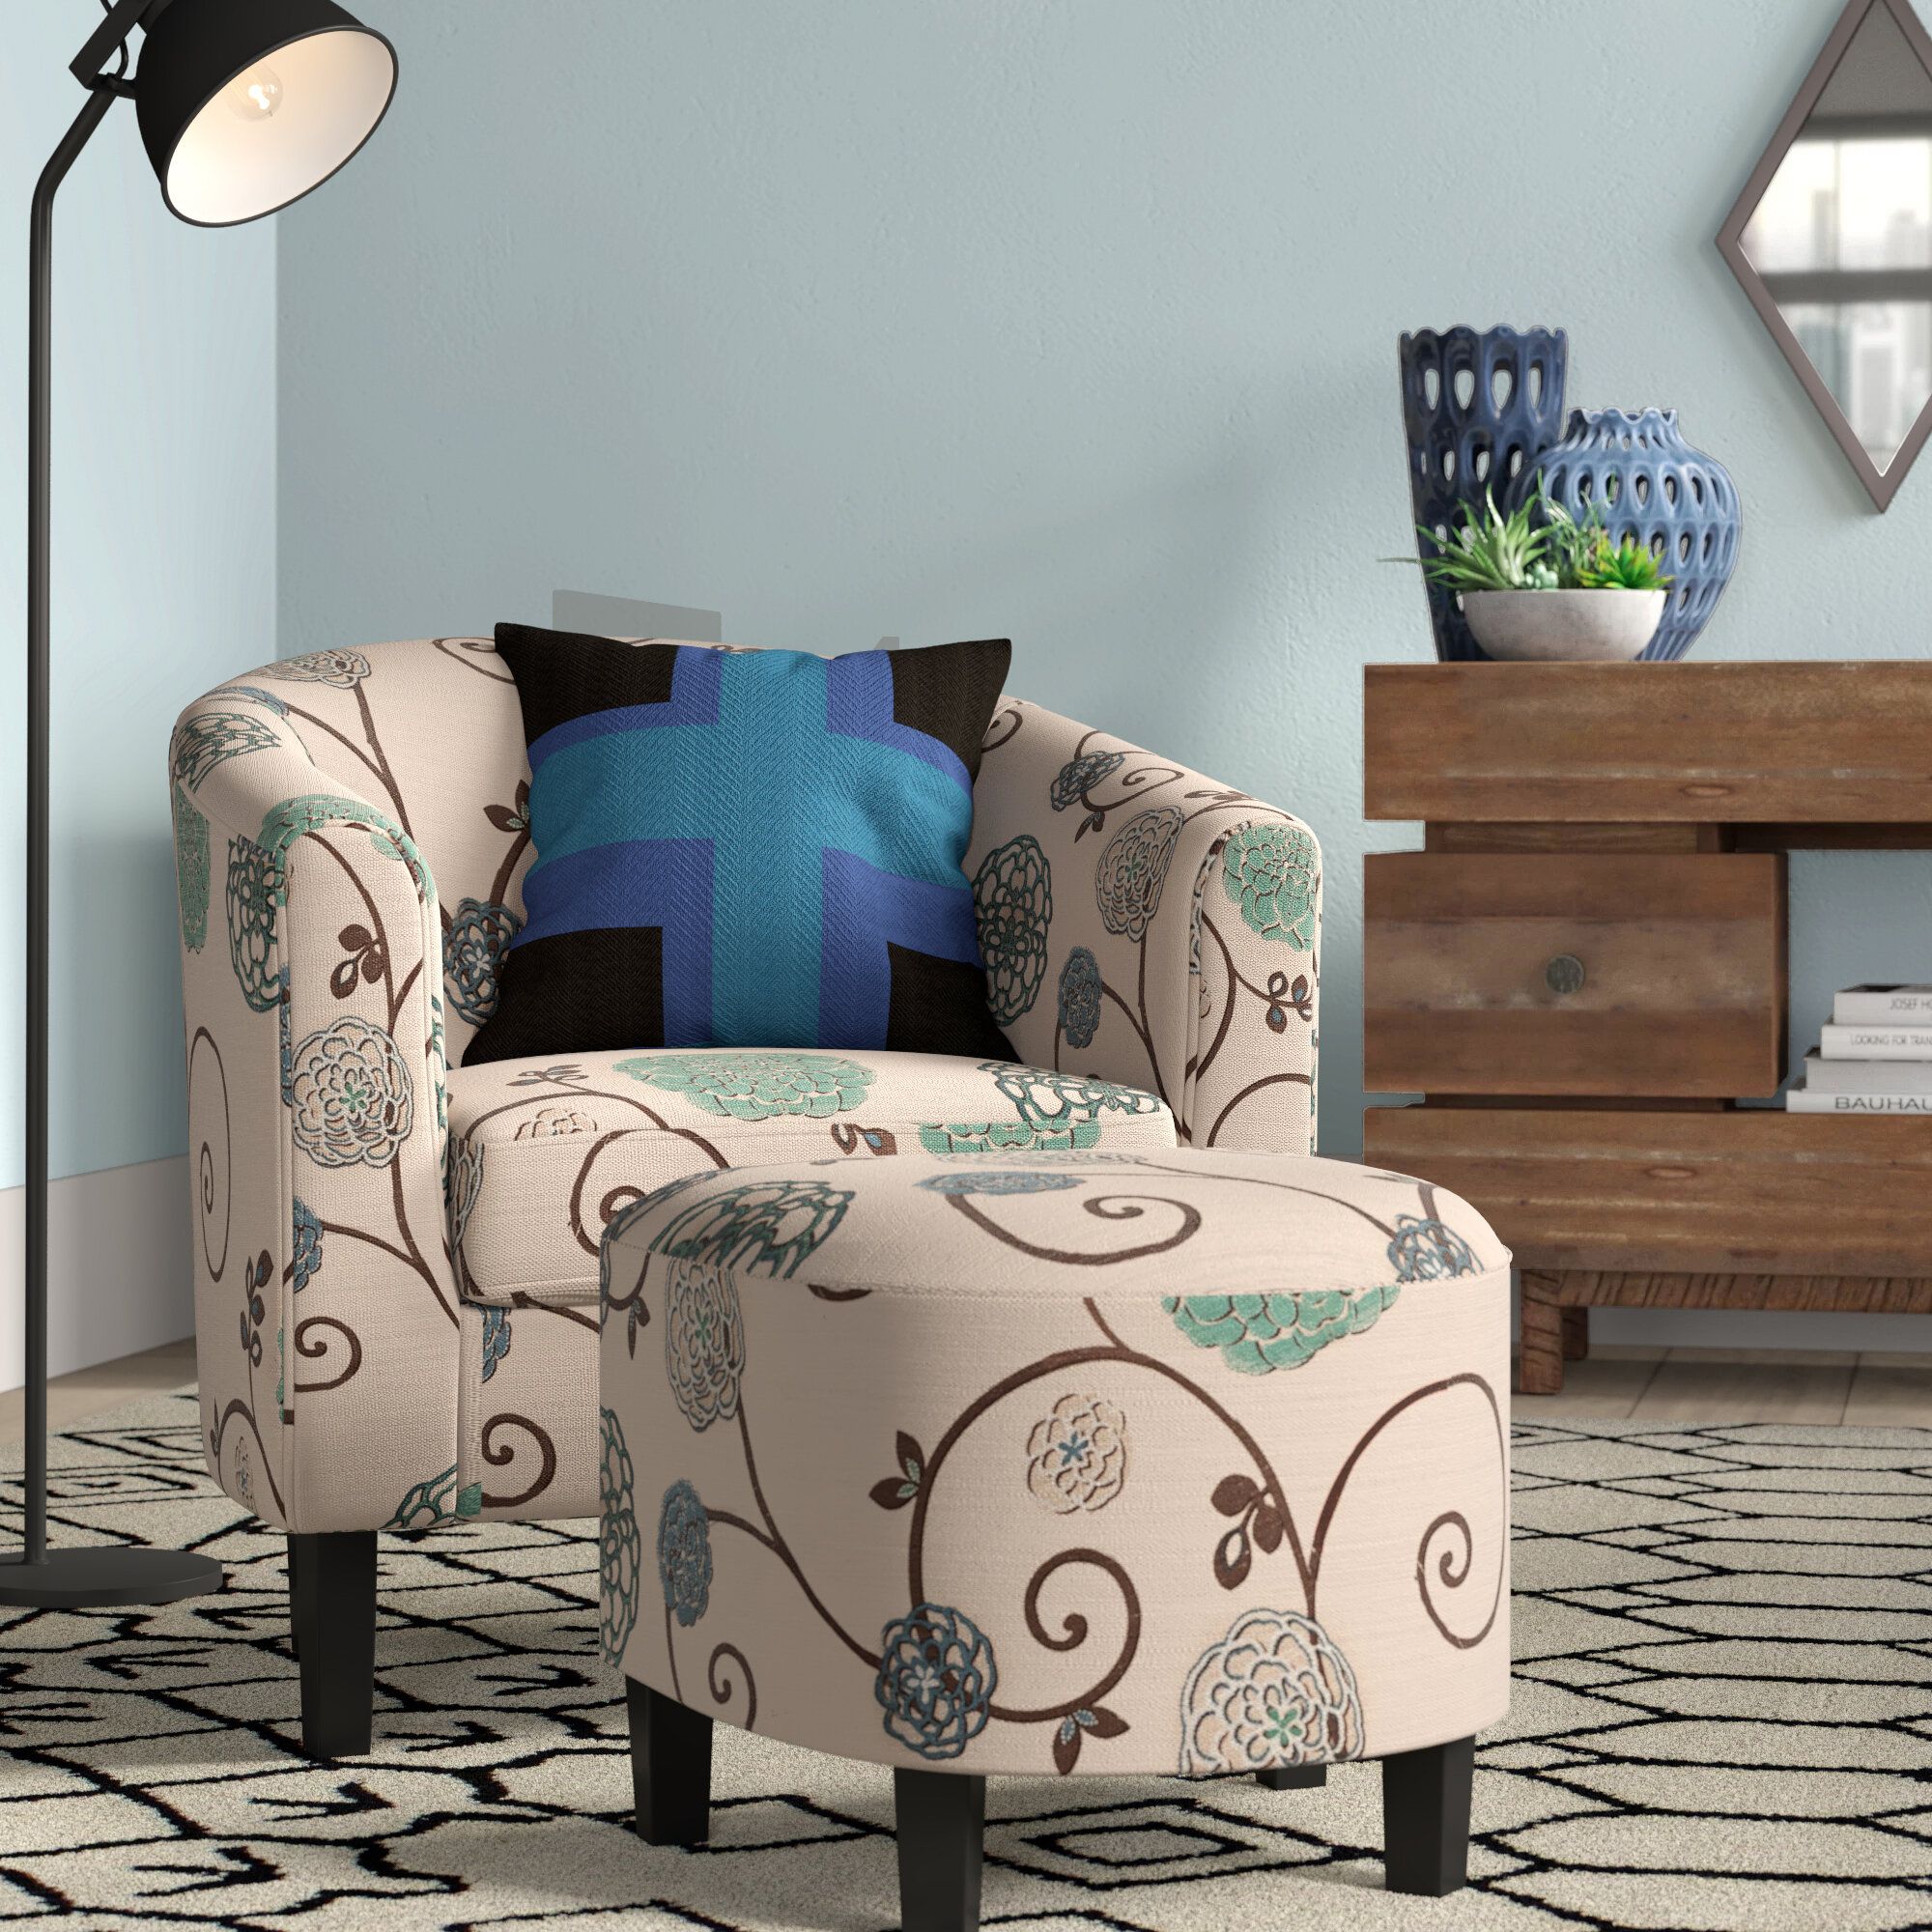 Barrel Grey Accent Chairs You'Ll Love In 2021 | Wayfair Within Harmon Cloud Barrel Chairs And Ottoman (View 11 of 15)